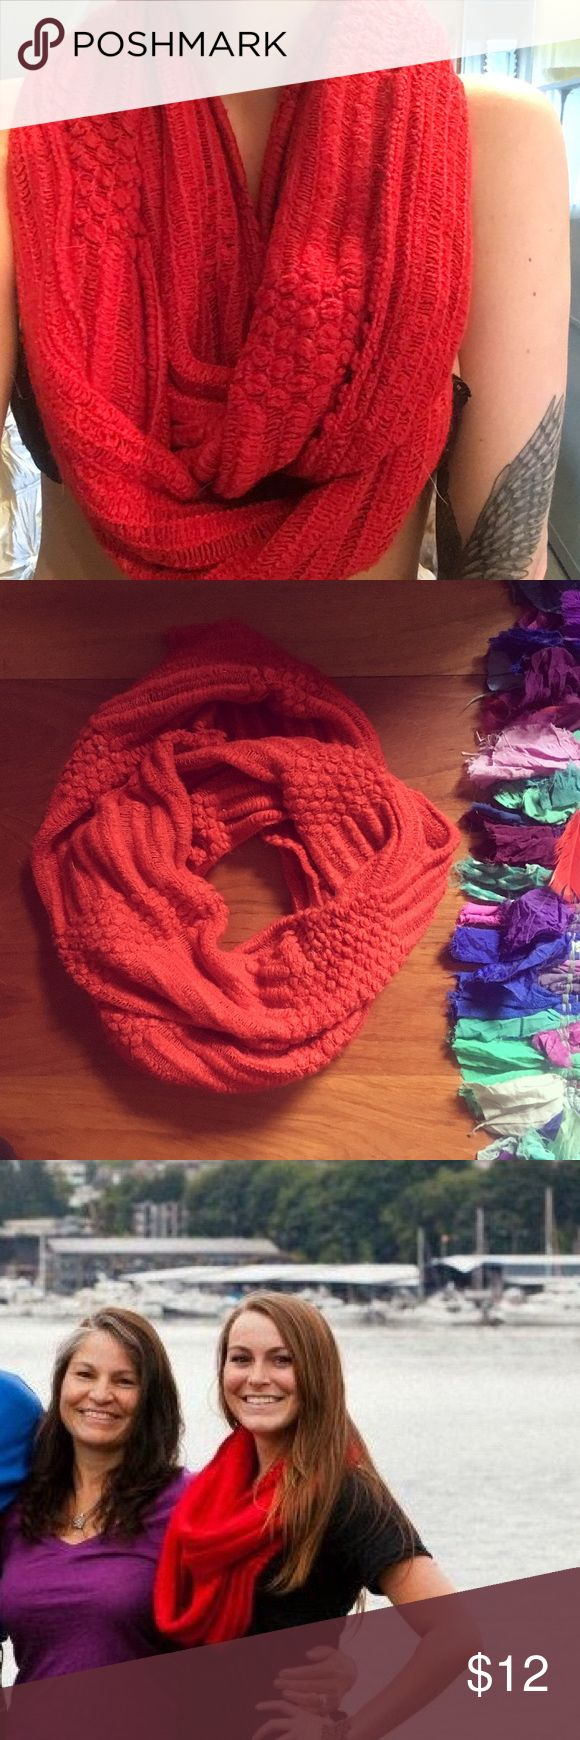 Urban outfitters red infinity scarf Urban outfitters red infinity scarf Urban Outfitters Accessories Scarves & Wraps